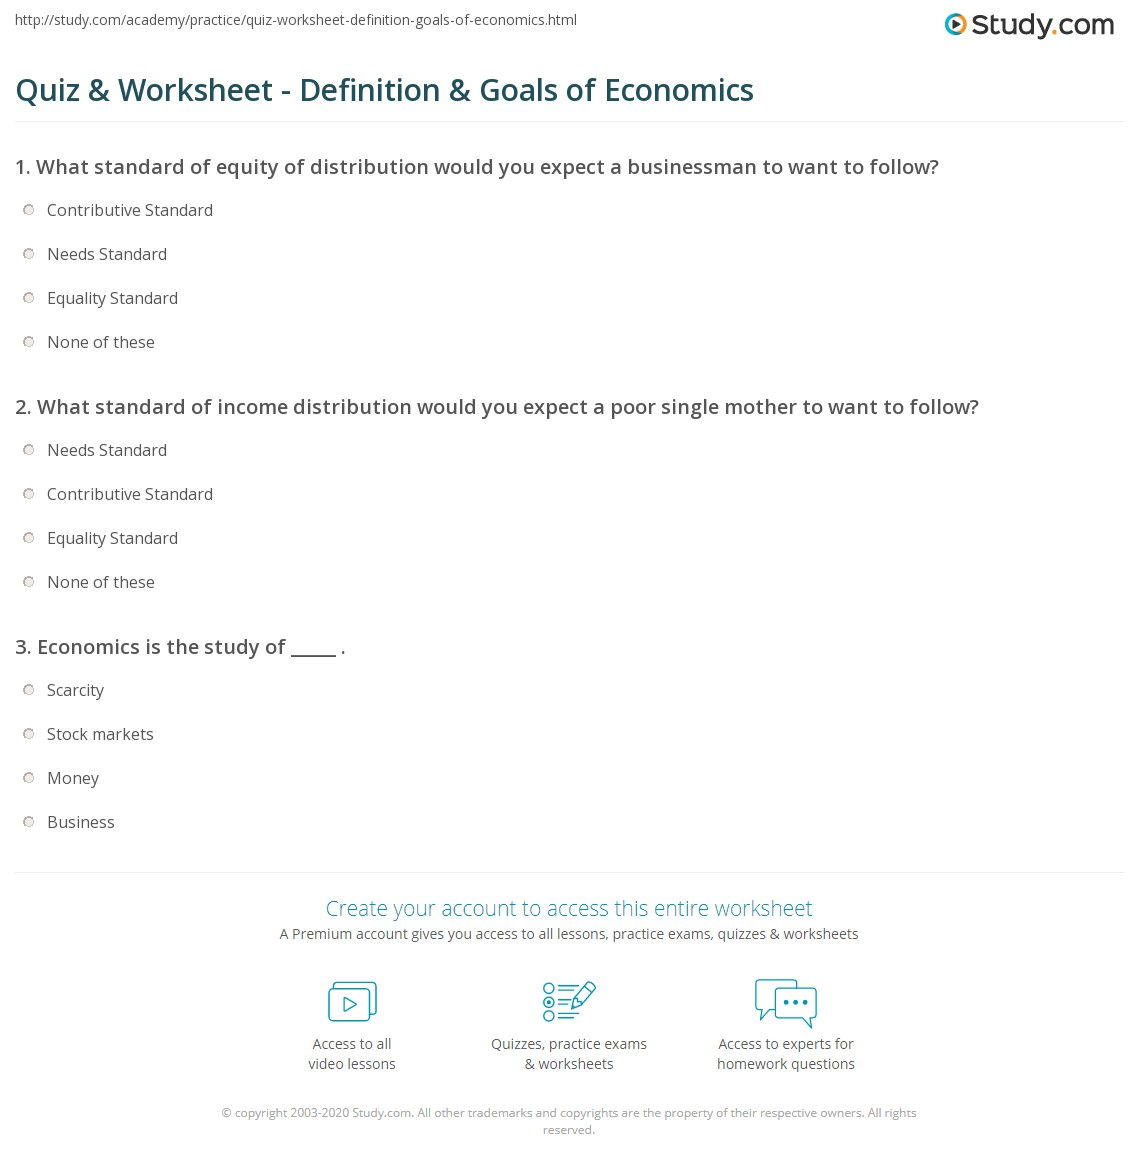 Quiz & Worksheet - Definition & Goals of Economics | Study.com